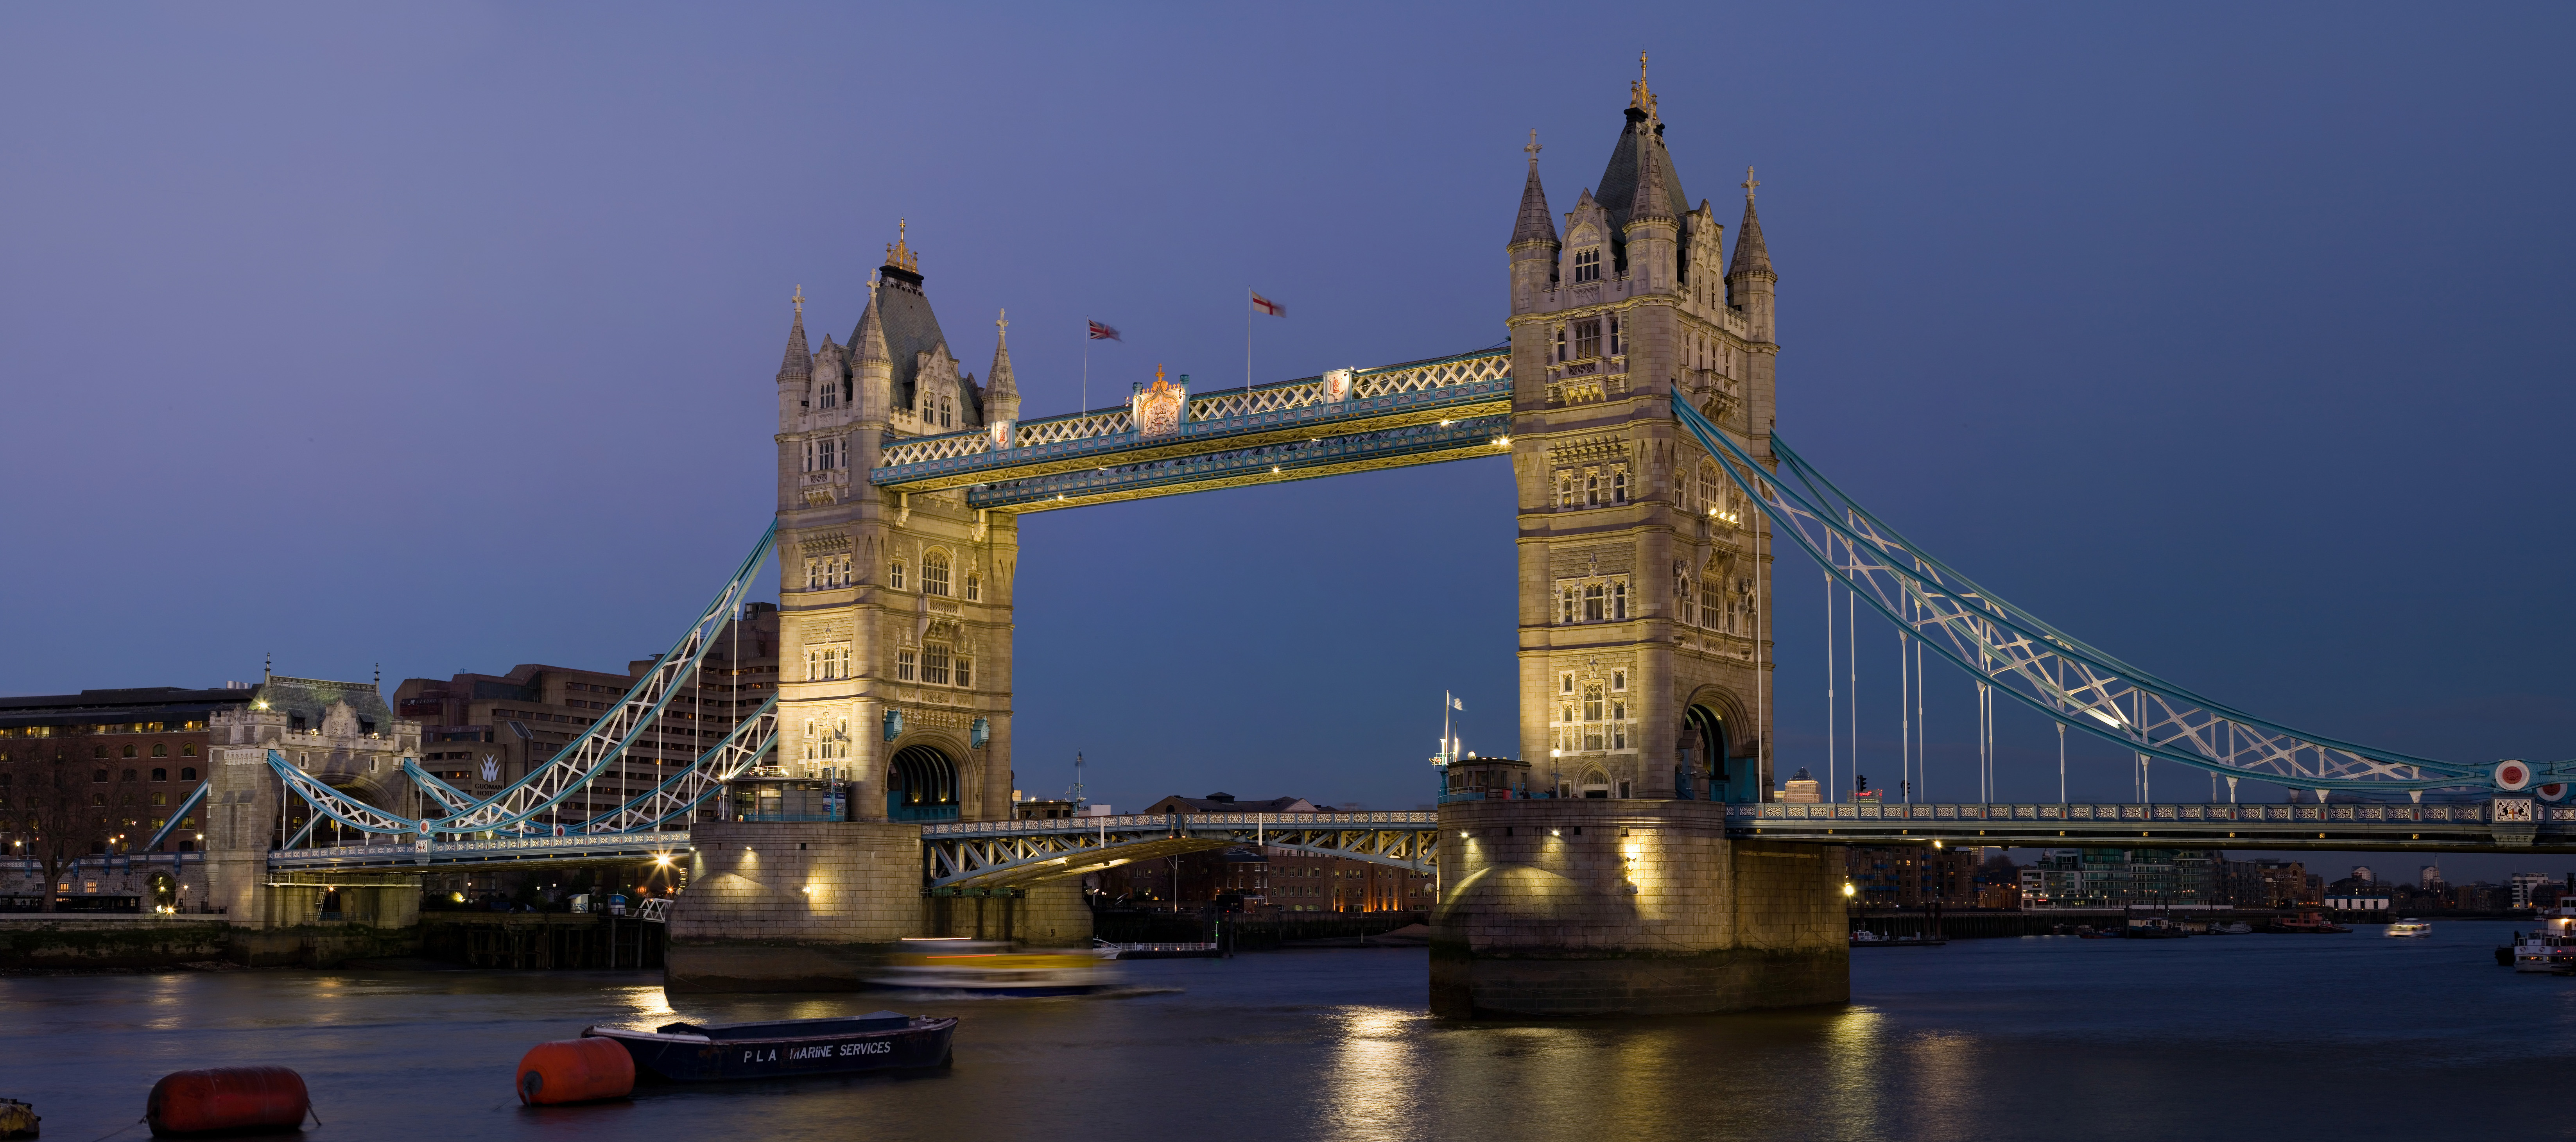 London Bridge Images Tower Bridge File:tower Bridge London Dusk